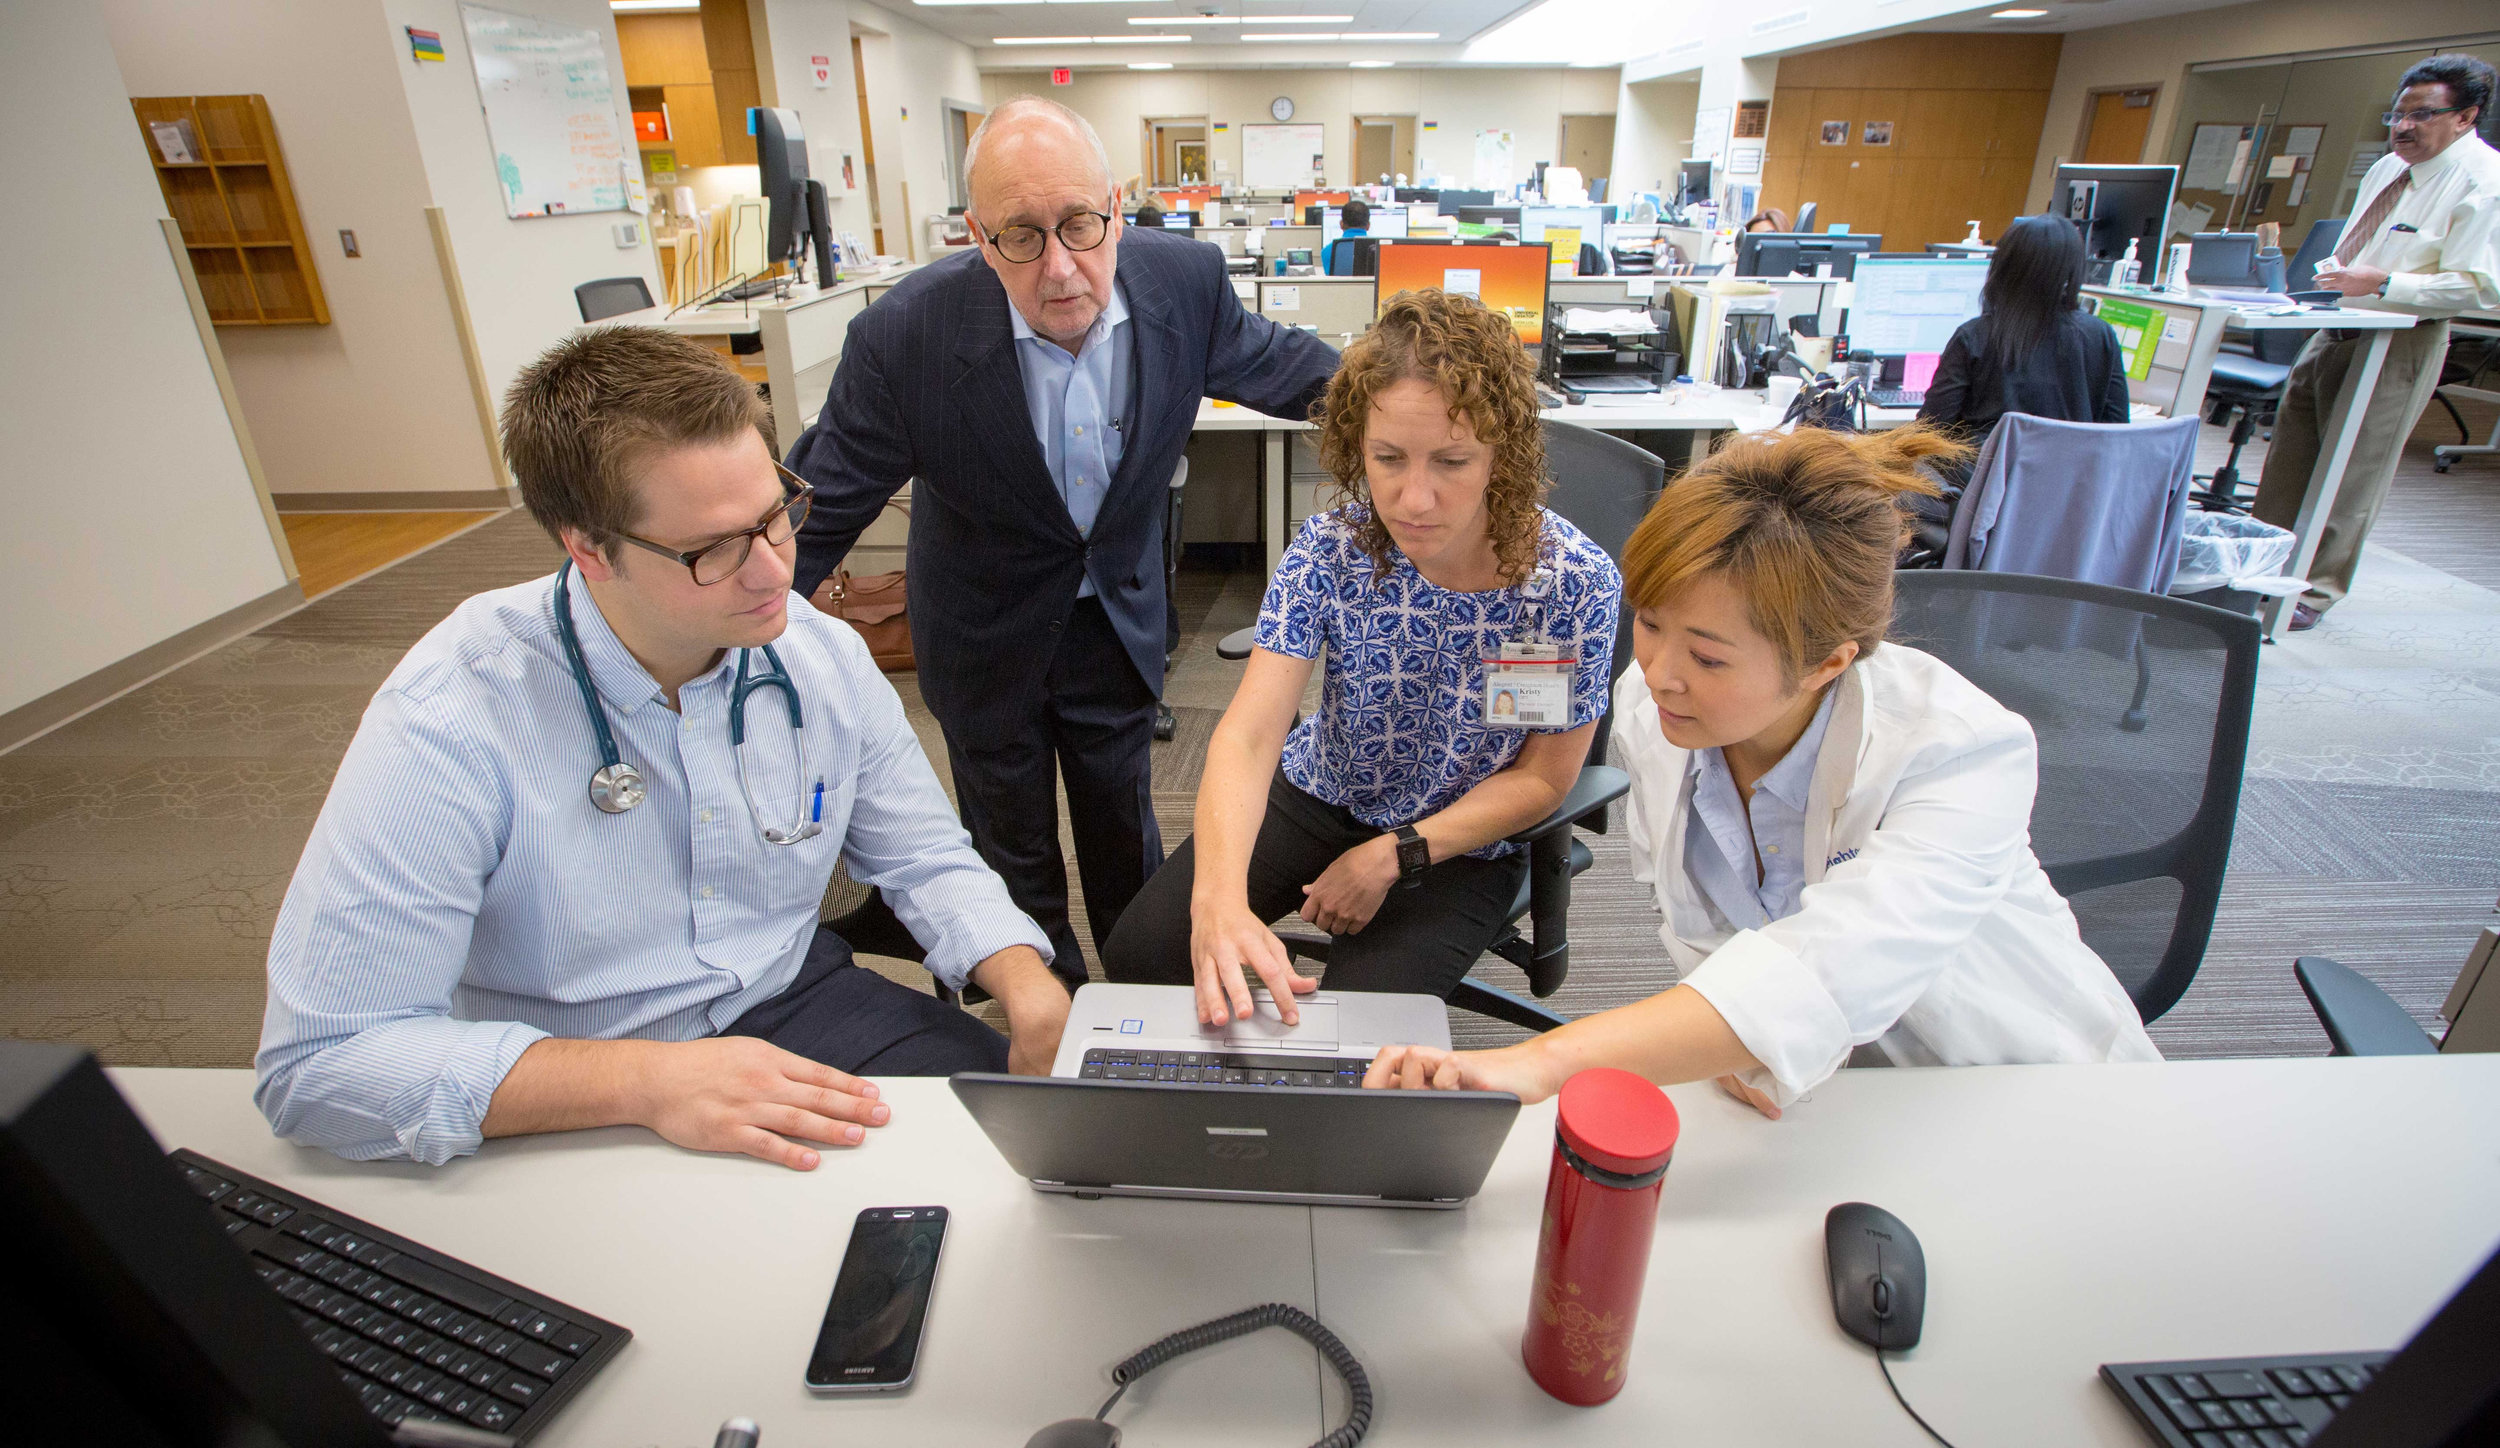 """At CHI Health Creighton University Medical Center, clinicians, residents and students gather in the """"huddle"""" as part of an innovative team-based approach. Team members from different health sciences backgrounds use their expertise for holistic health care (photo by Creighton University)"""